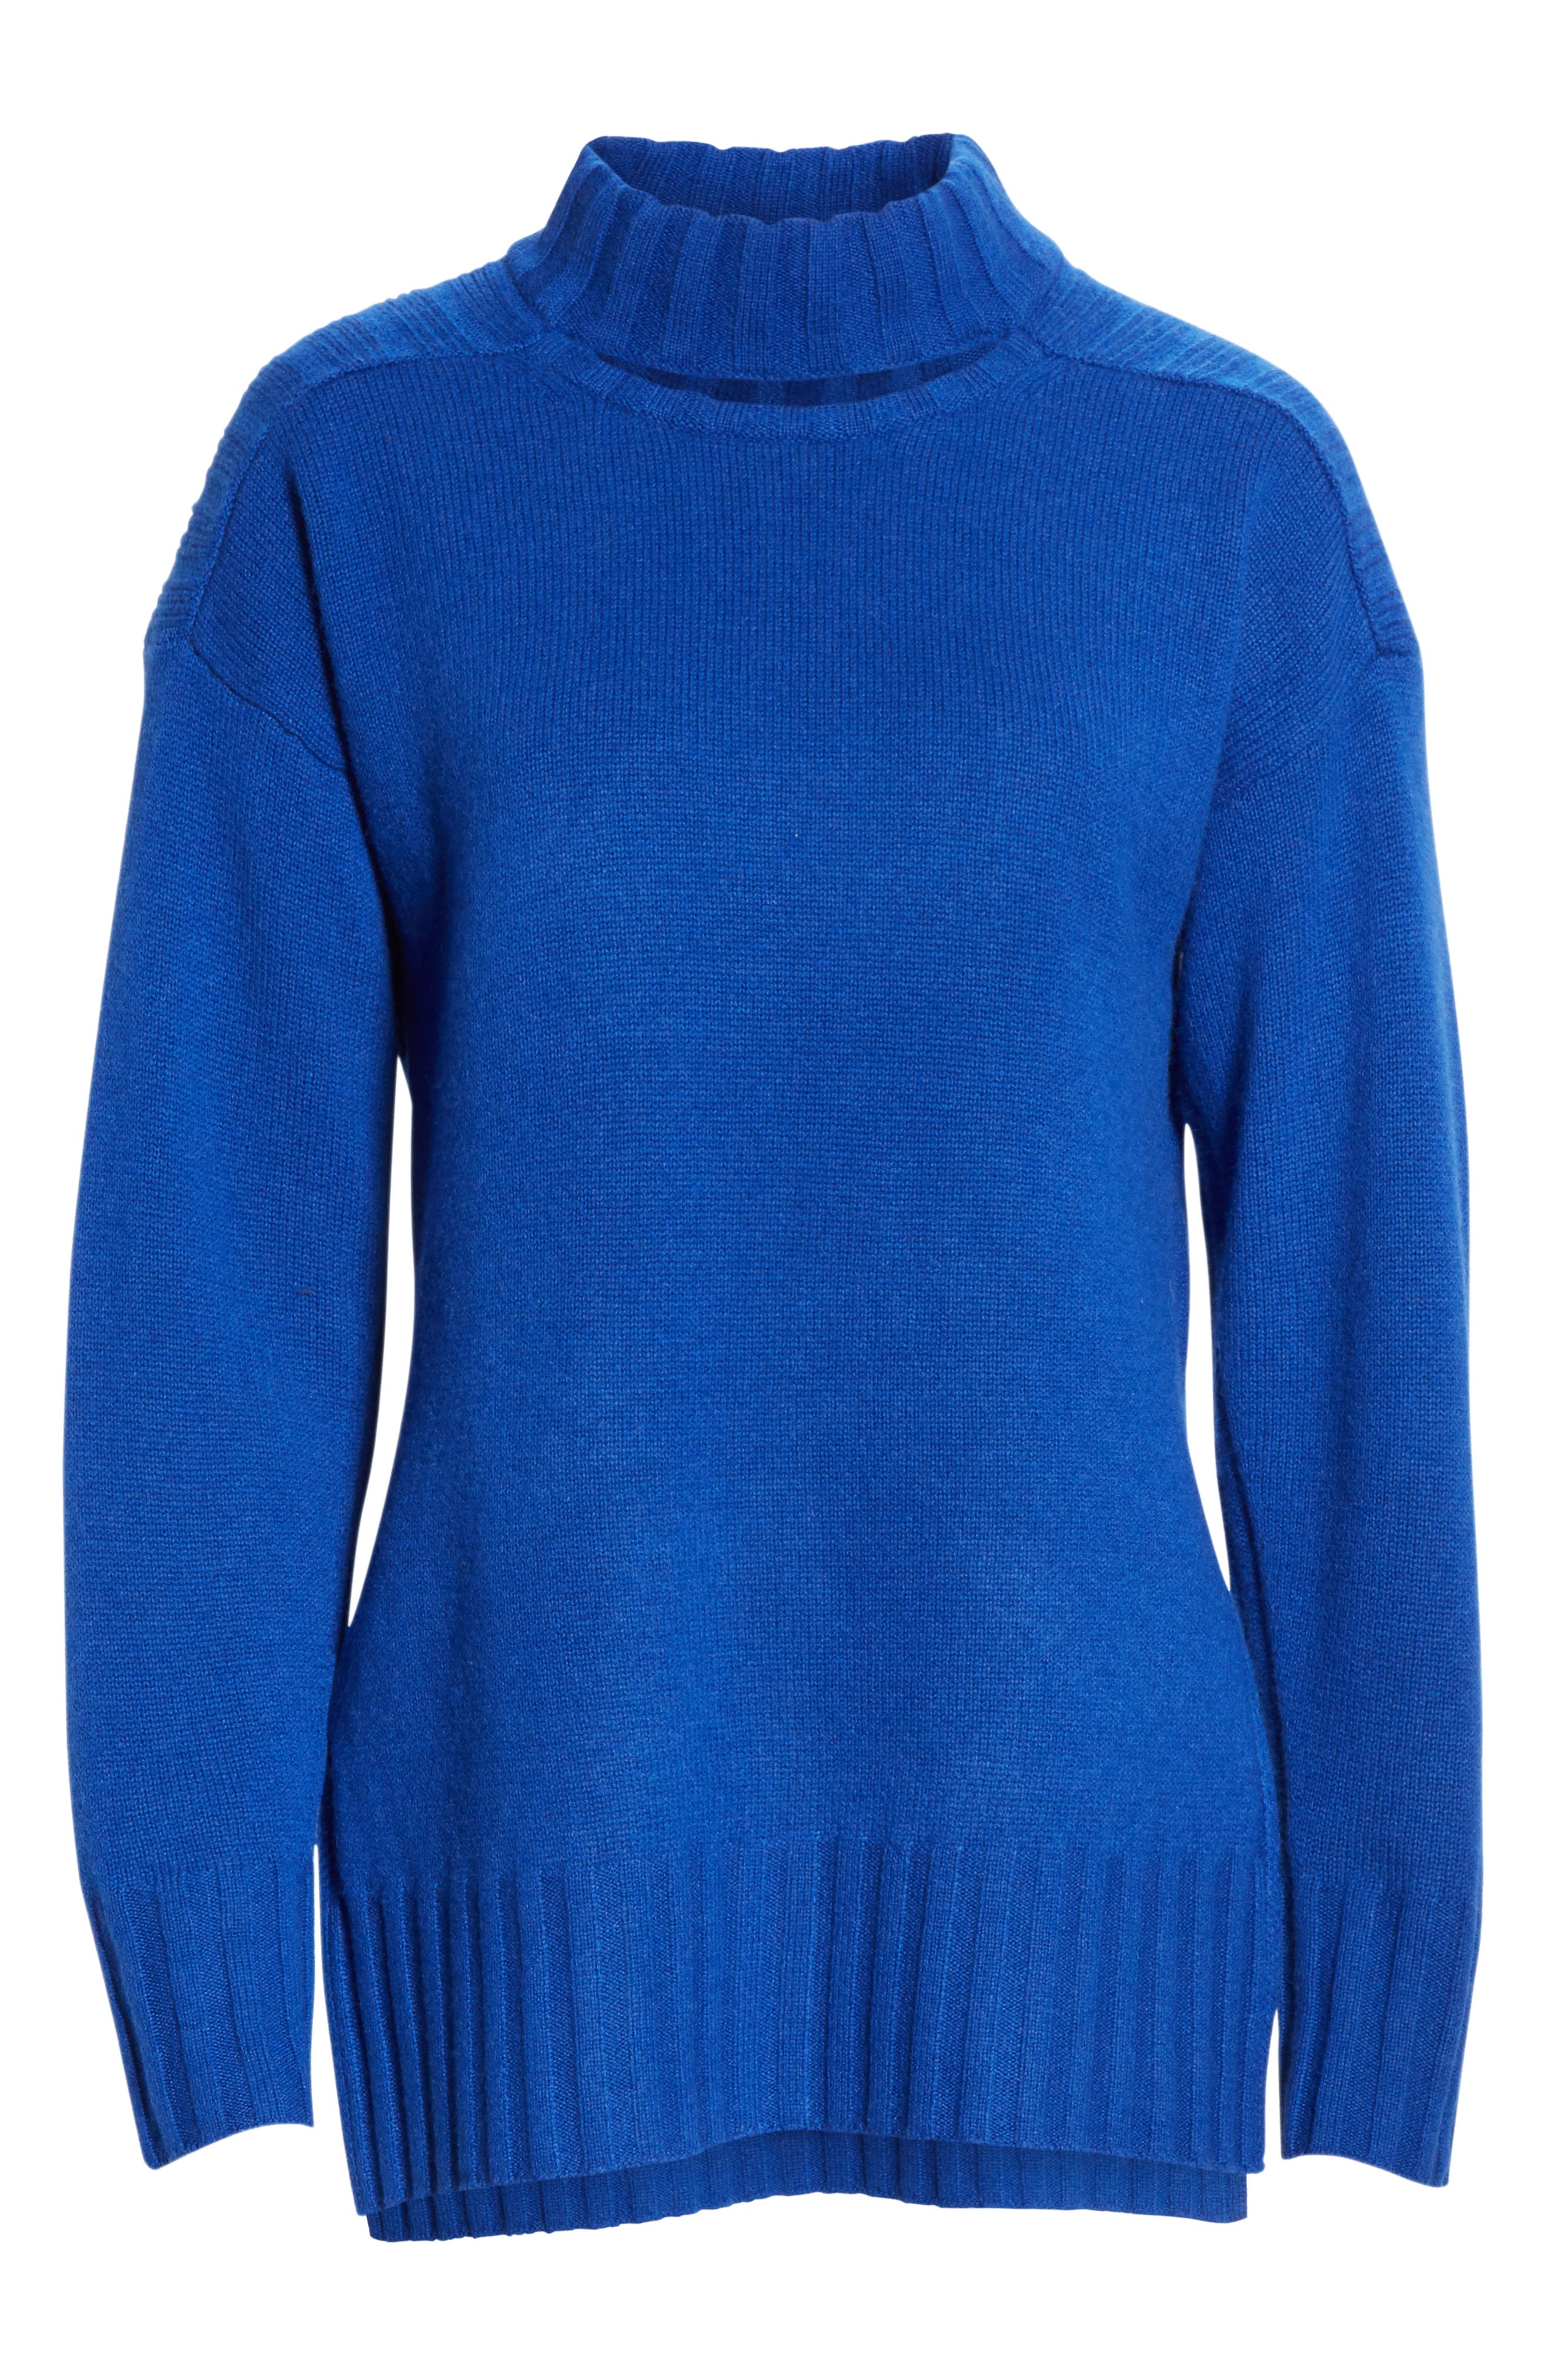 Stratford Wool & Cashmere Sweater,                             Alternate thumbnail 6, color,                             HYPER BLUE